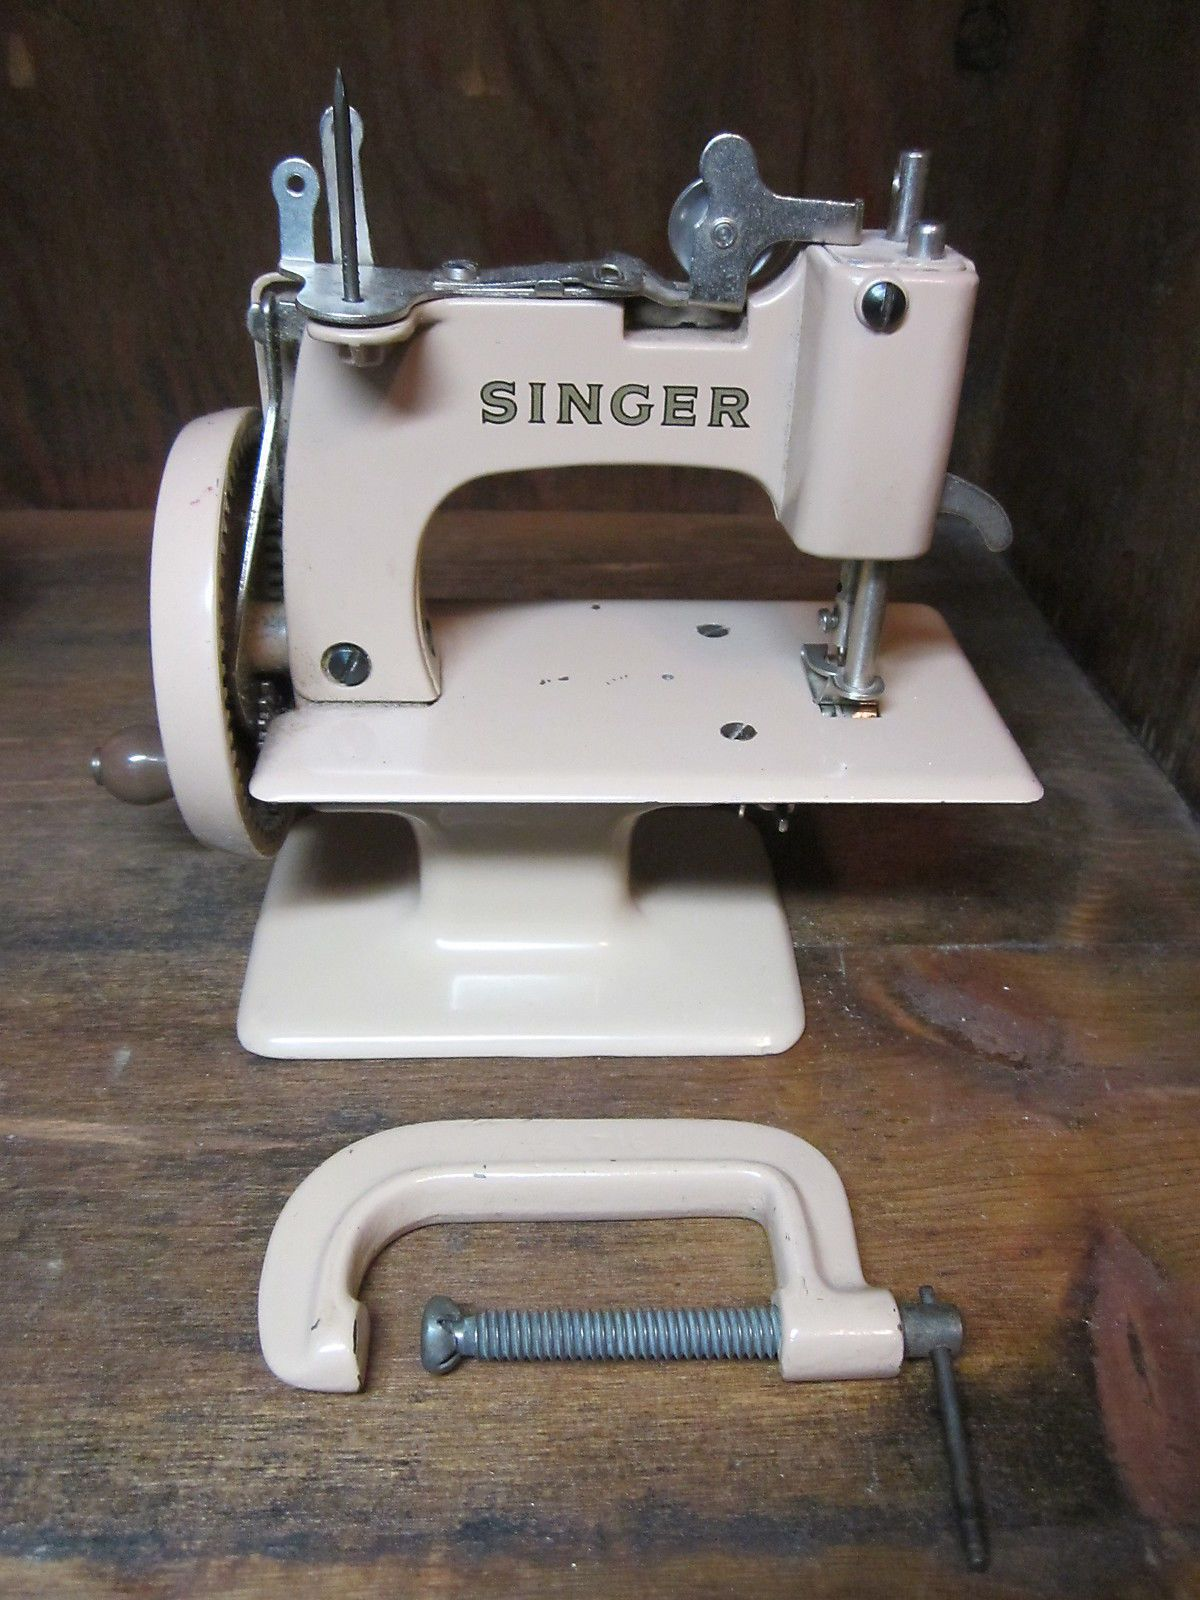 medium resolution of details about vintage singer sewing machine model 301 untested as is ez wiring harness kit http wwwvendiocom stores sewingvintage item